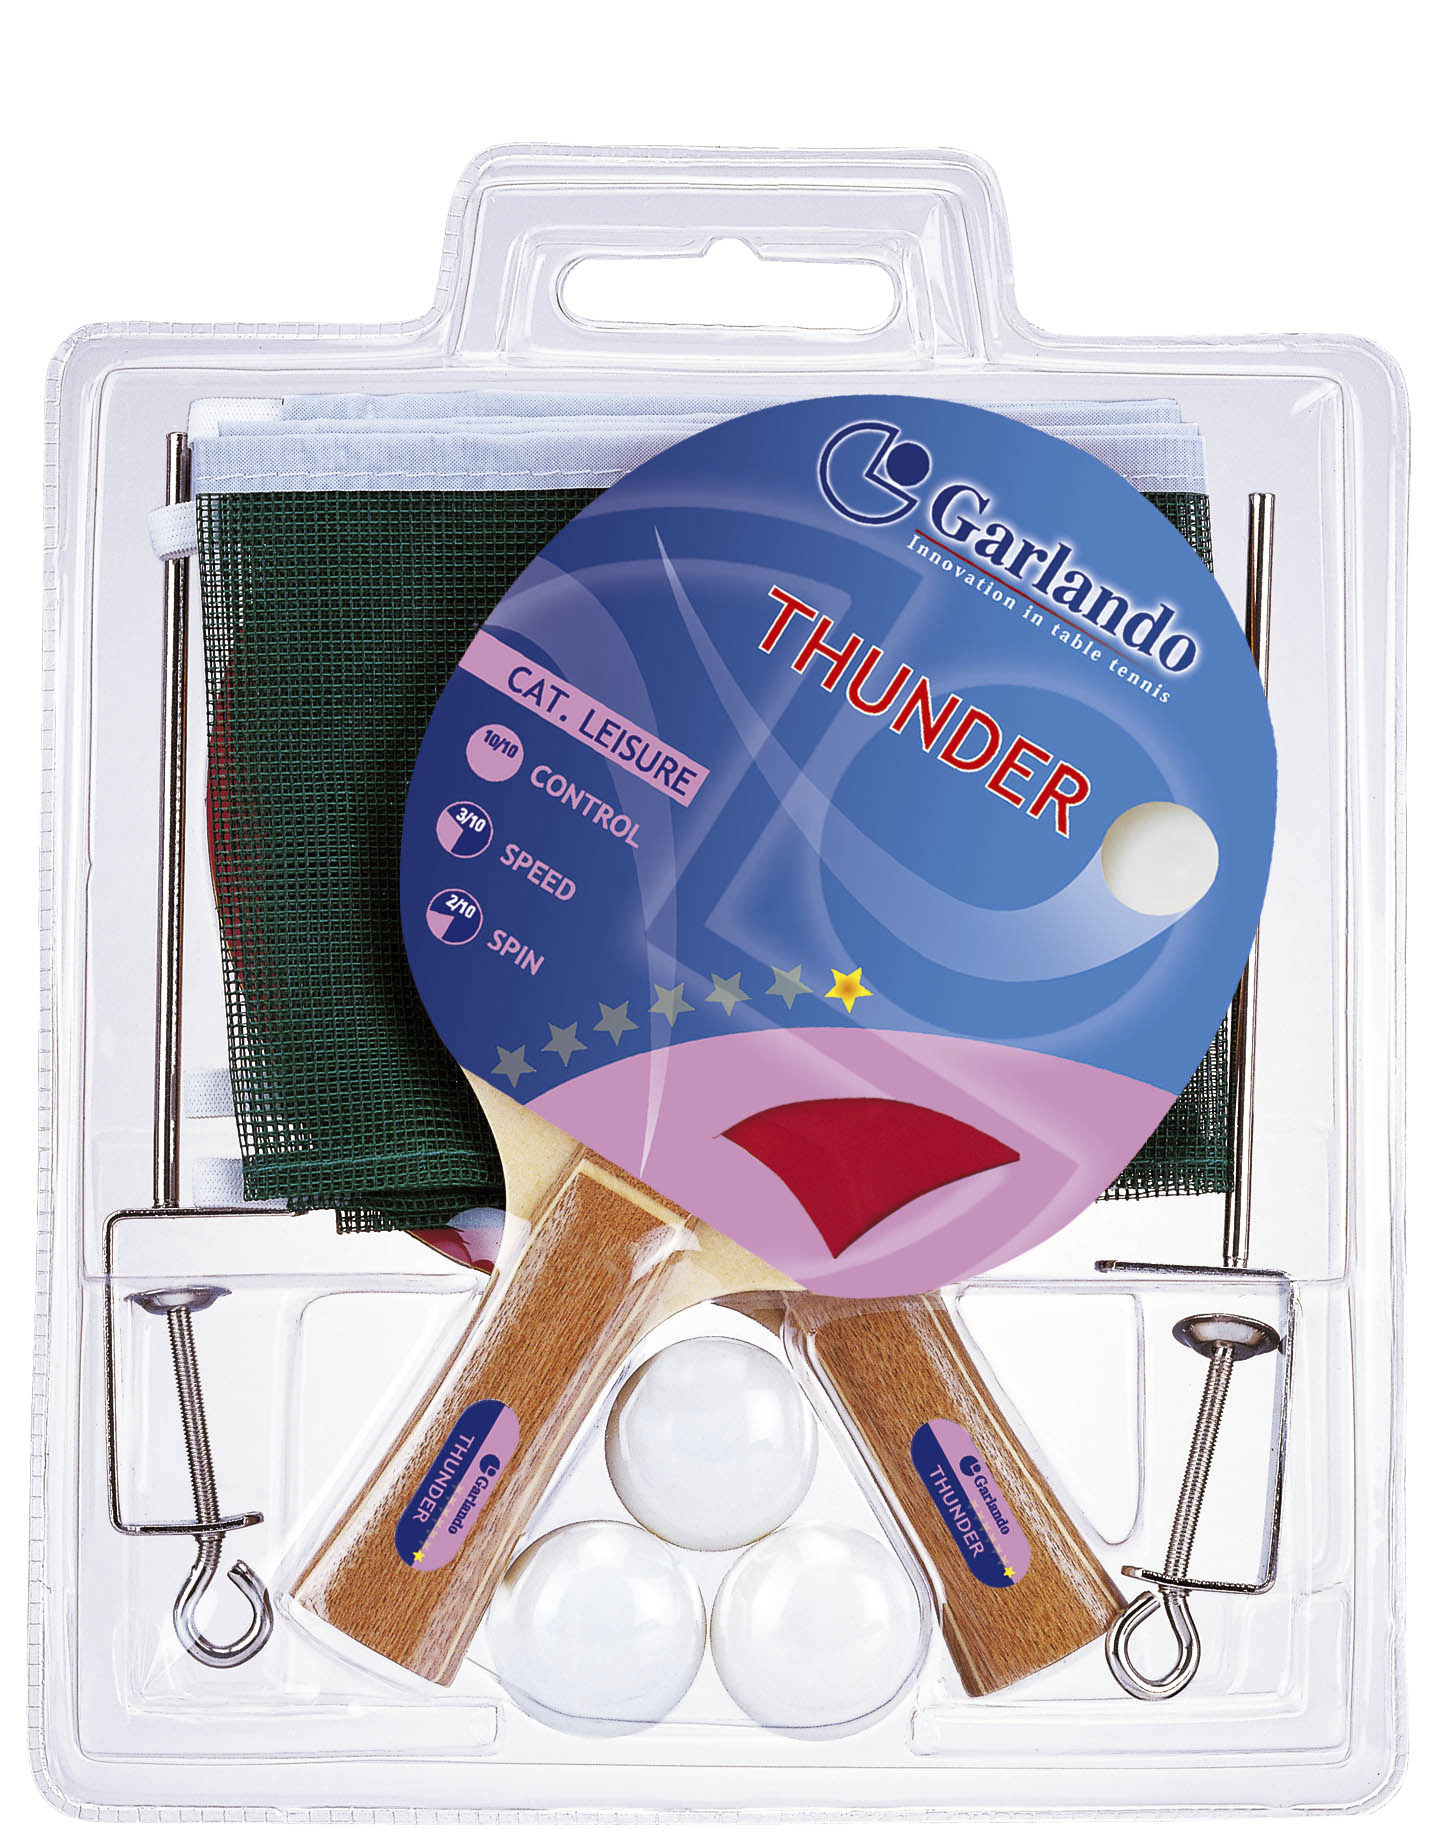 Ping Pong Table Accessories Kits Parts Game Room Guys